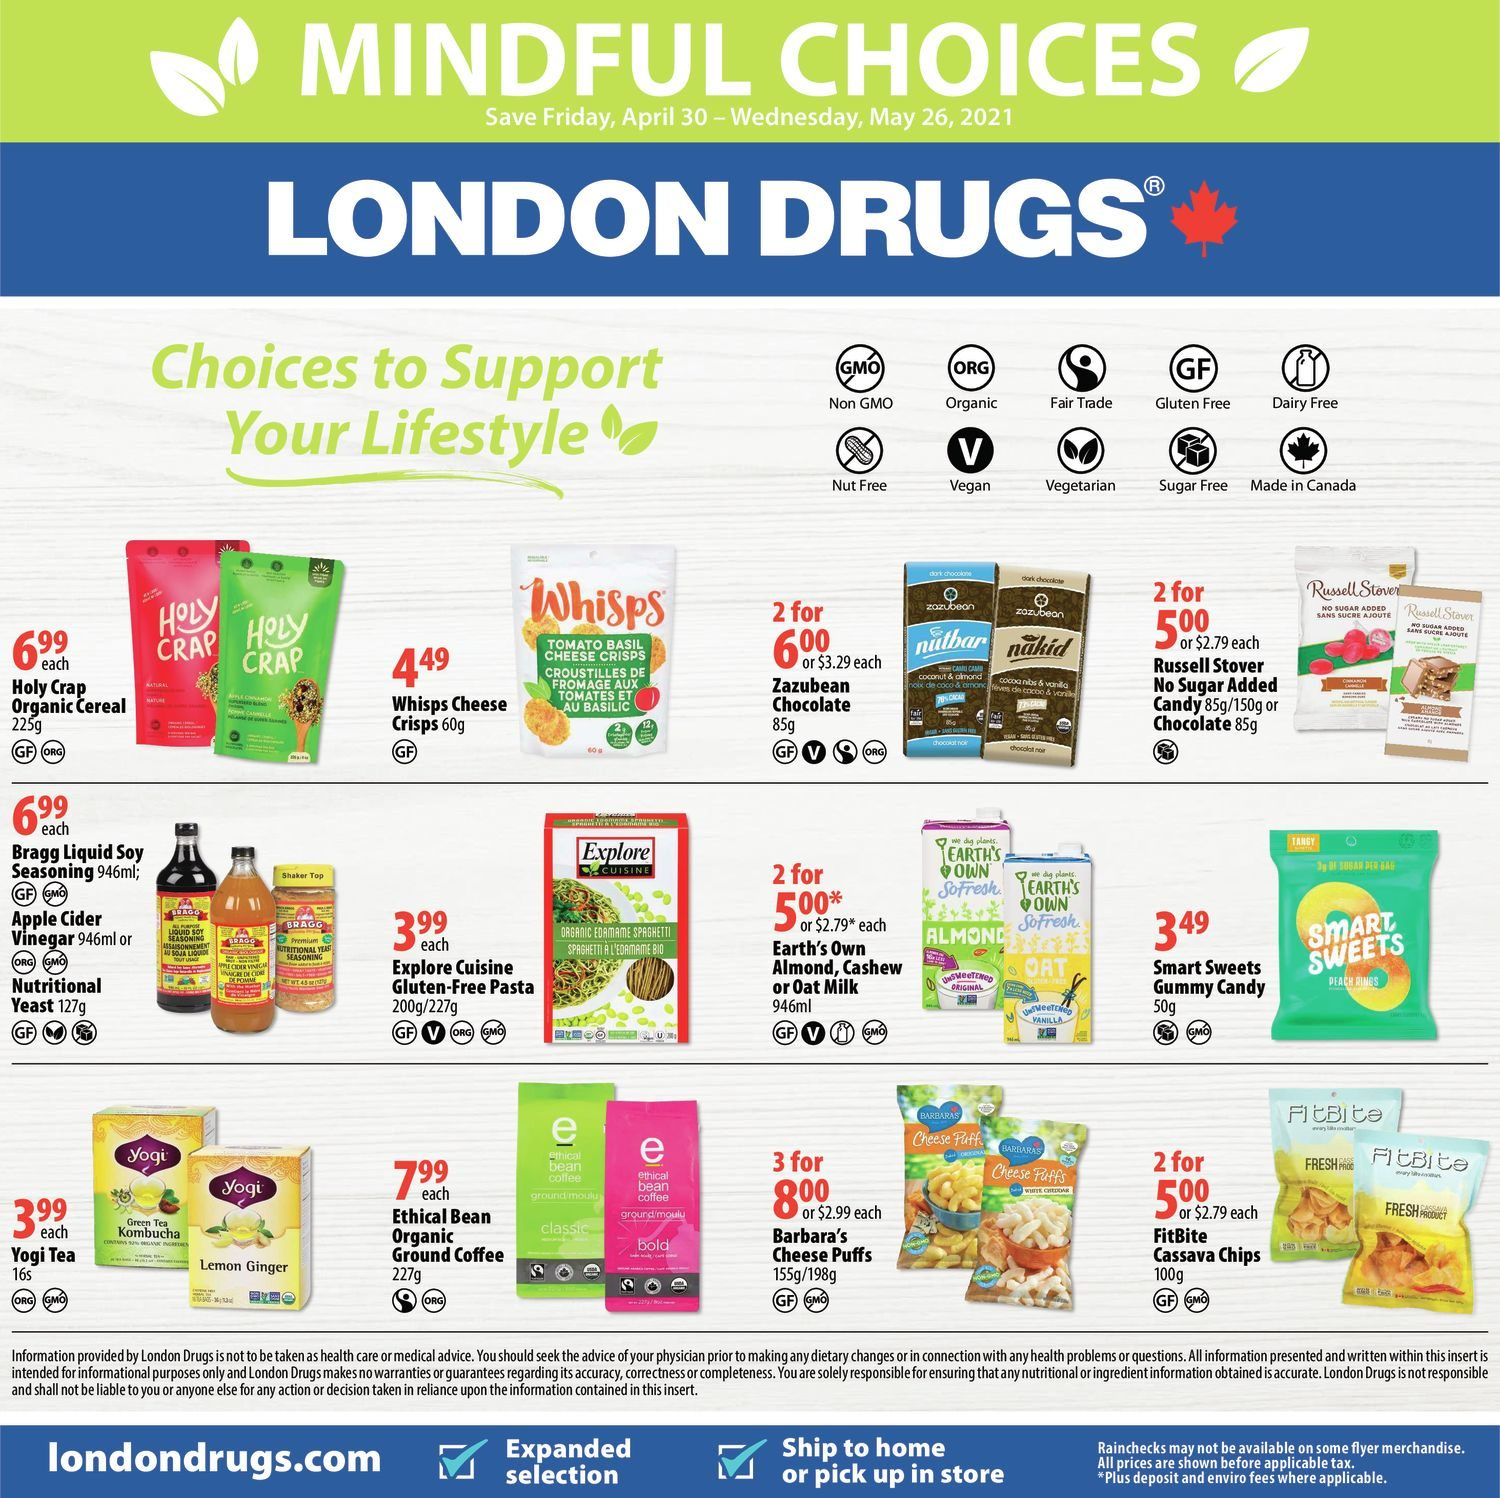 London Drugs - Mindful Choices - Choices To Support Your Lifestyle